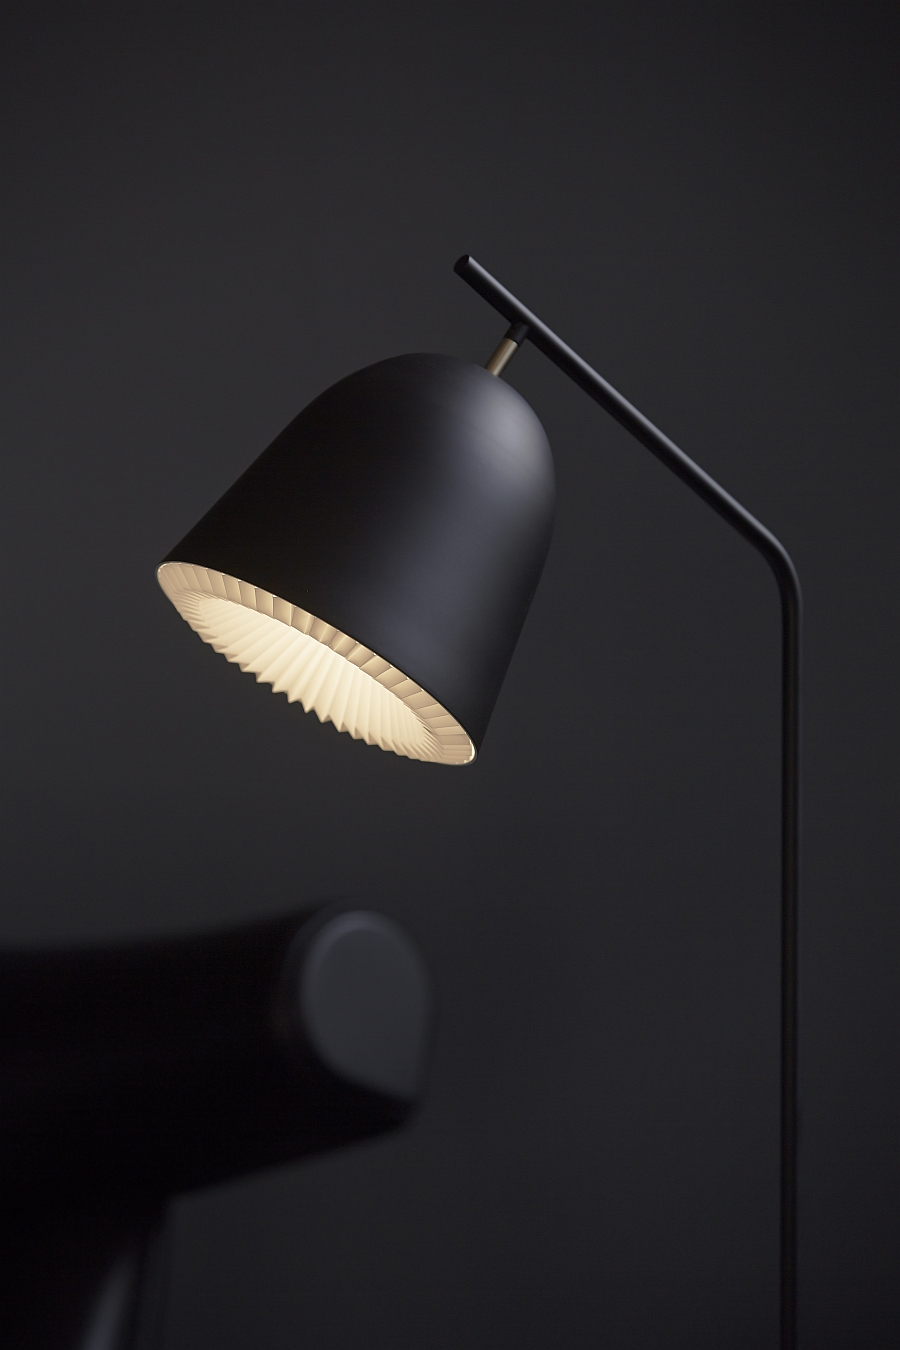 Cach 201 Le Klint S Urbane Lamp Series Is The Season S